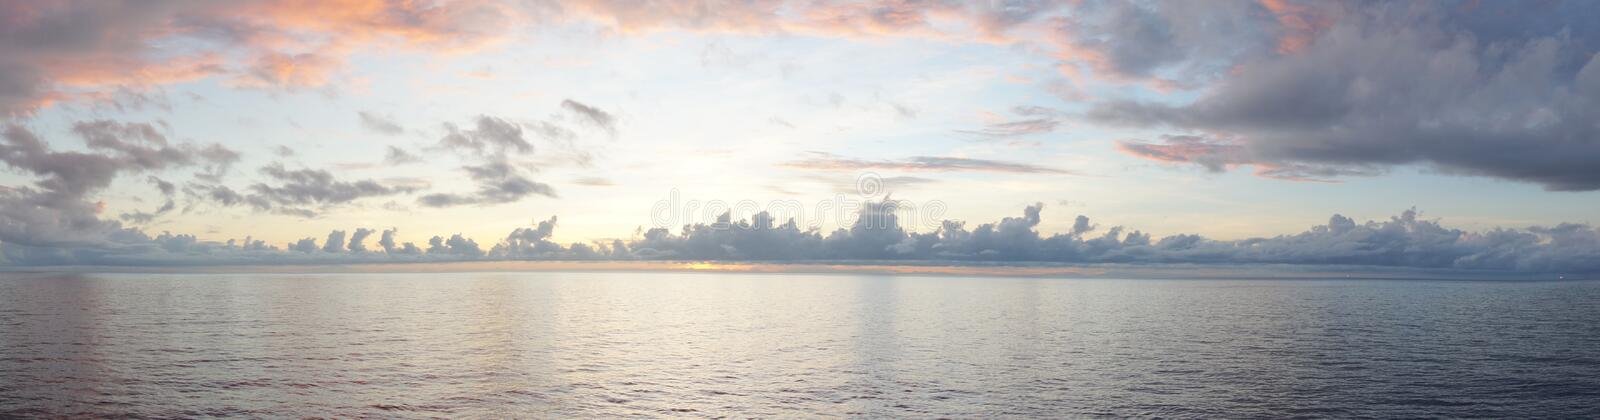 Download Sunrise View On The Middle Of Sea Stock Photo - Image: 36714442